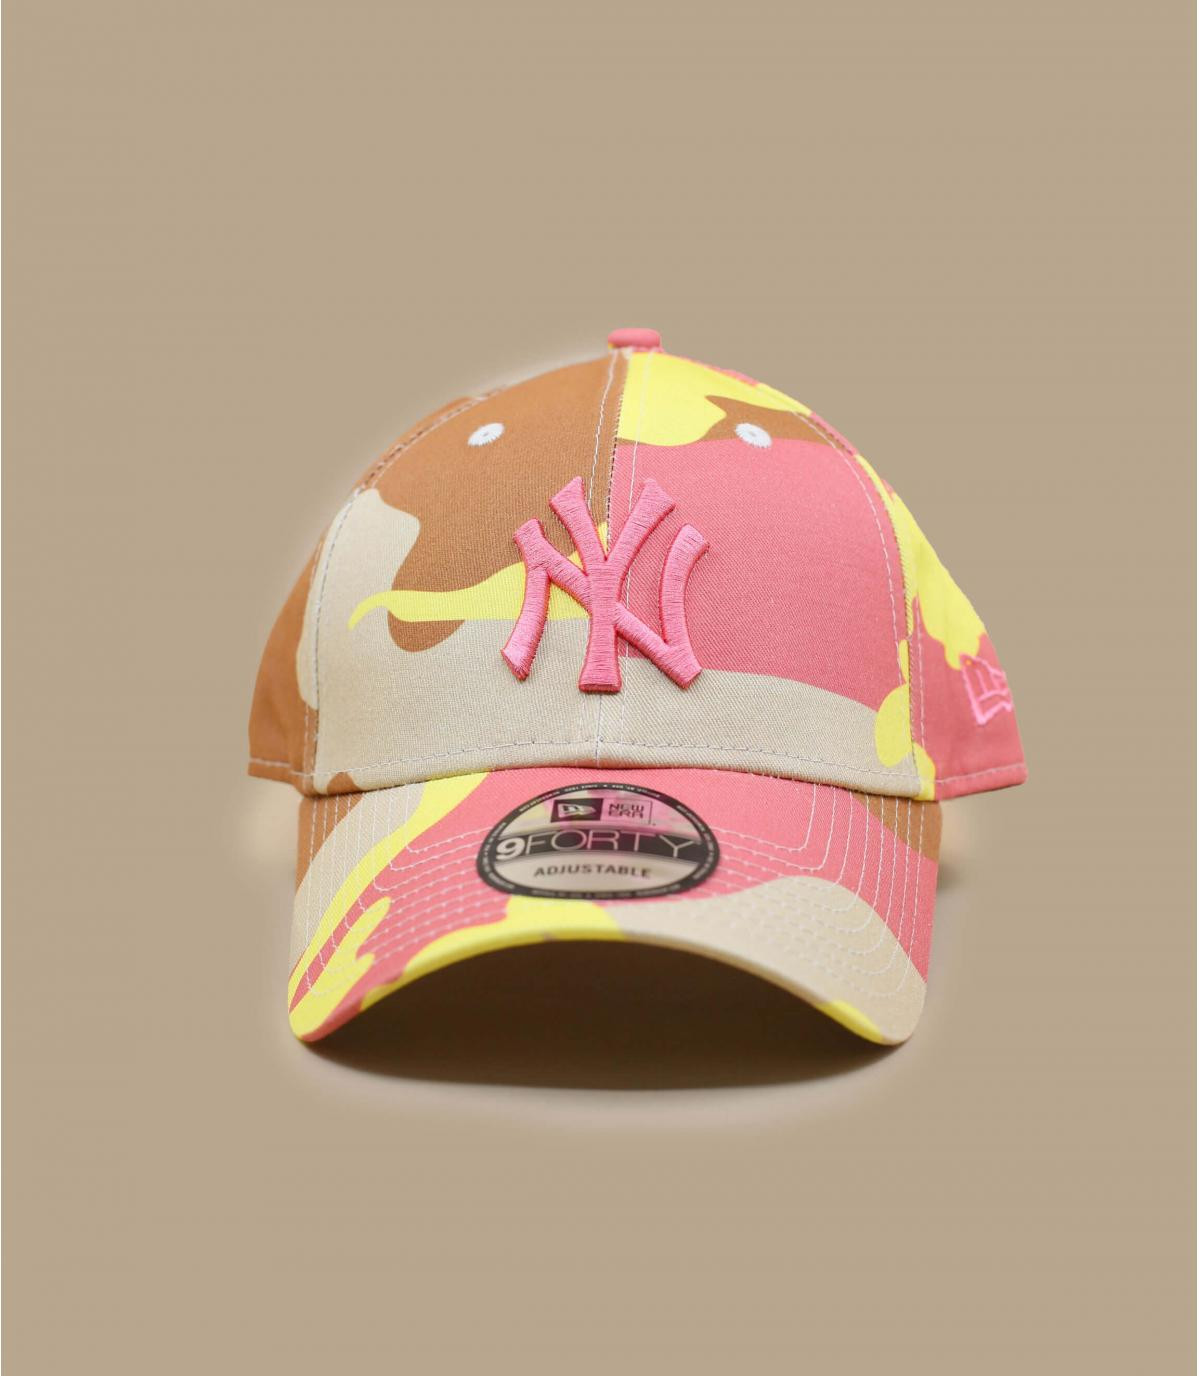 Details Camo Pack NY 940 stone - afbeeling 2